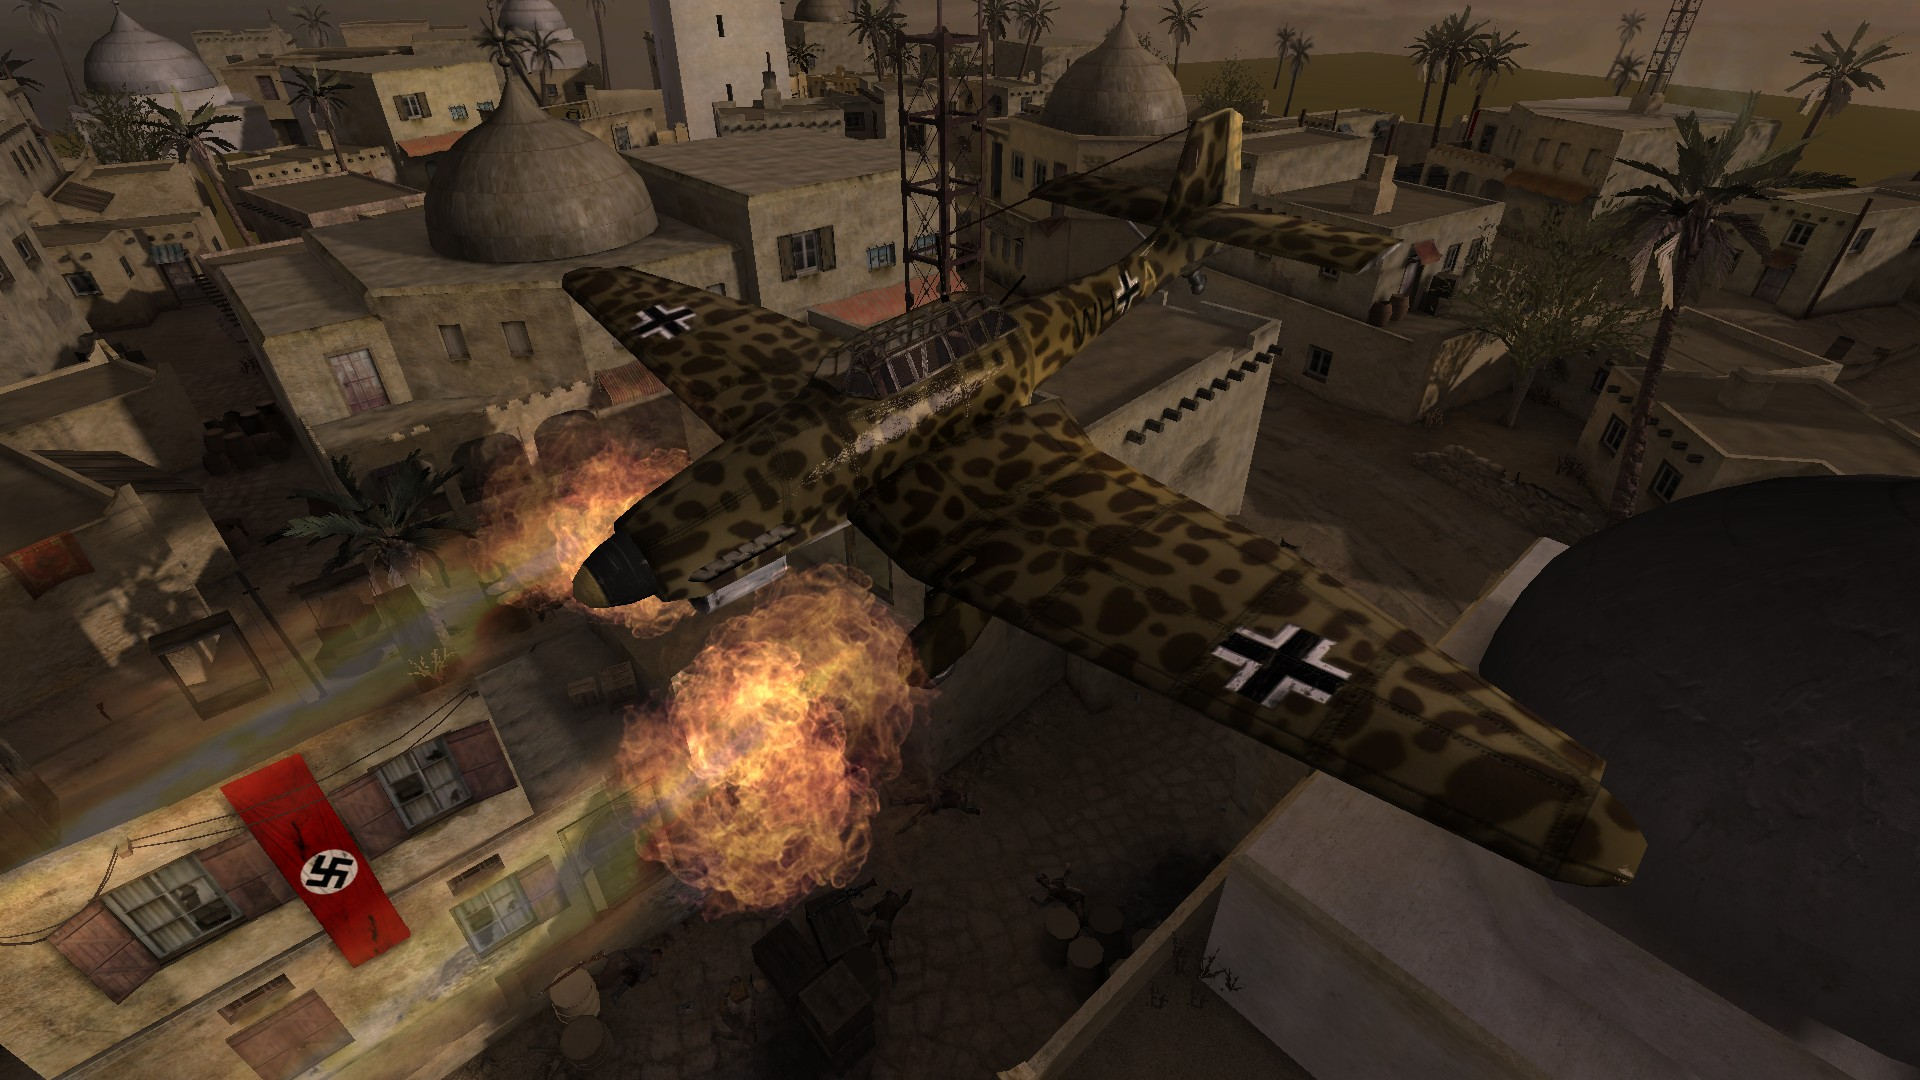 Browse and play mods created for Call of Duty 2 at Mod DB.